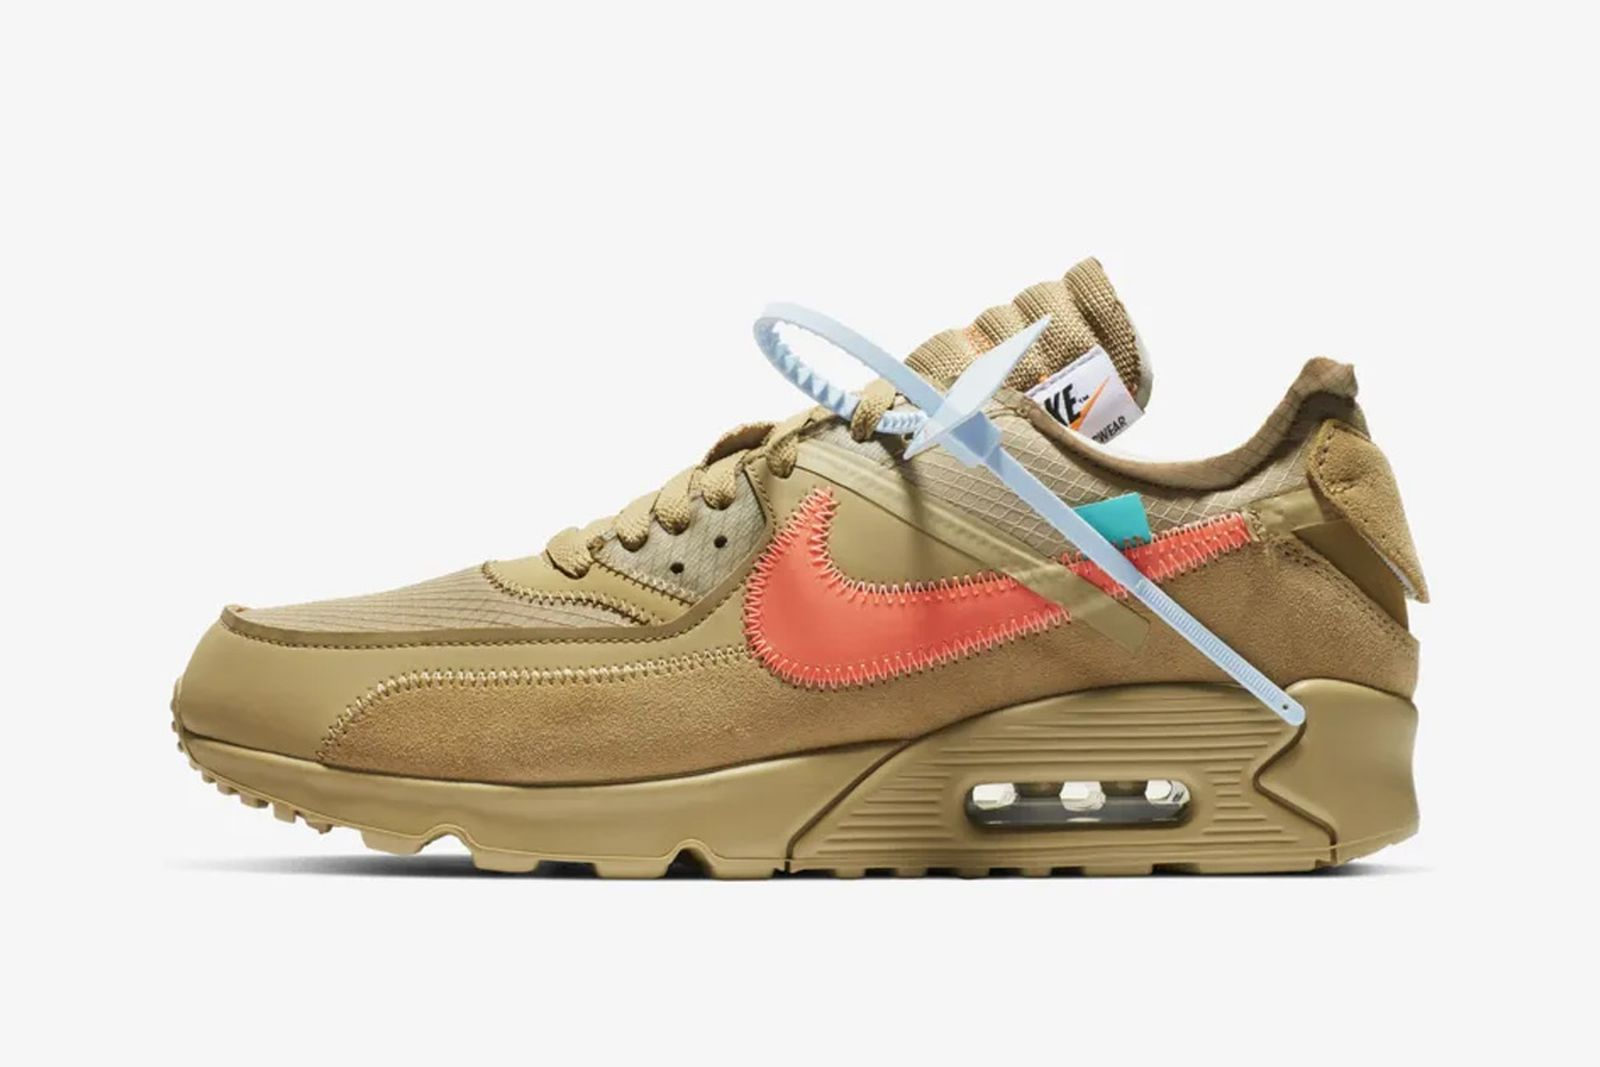 OFF-WHITE x Nike Air Max 90 2019: Where to Buy Today